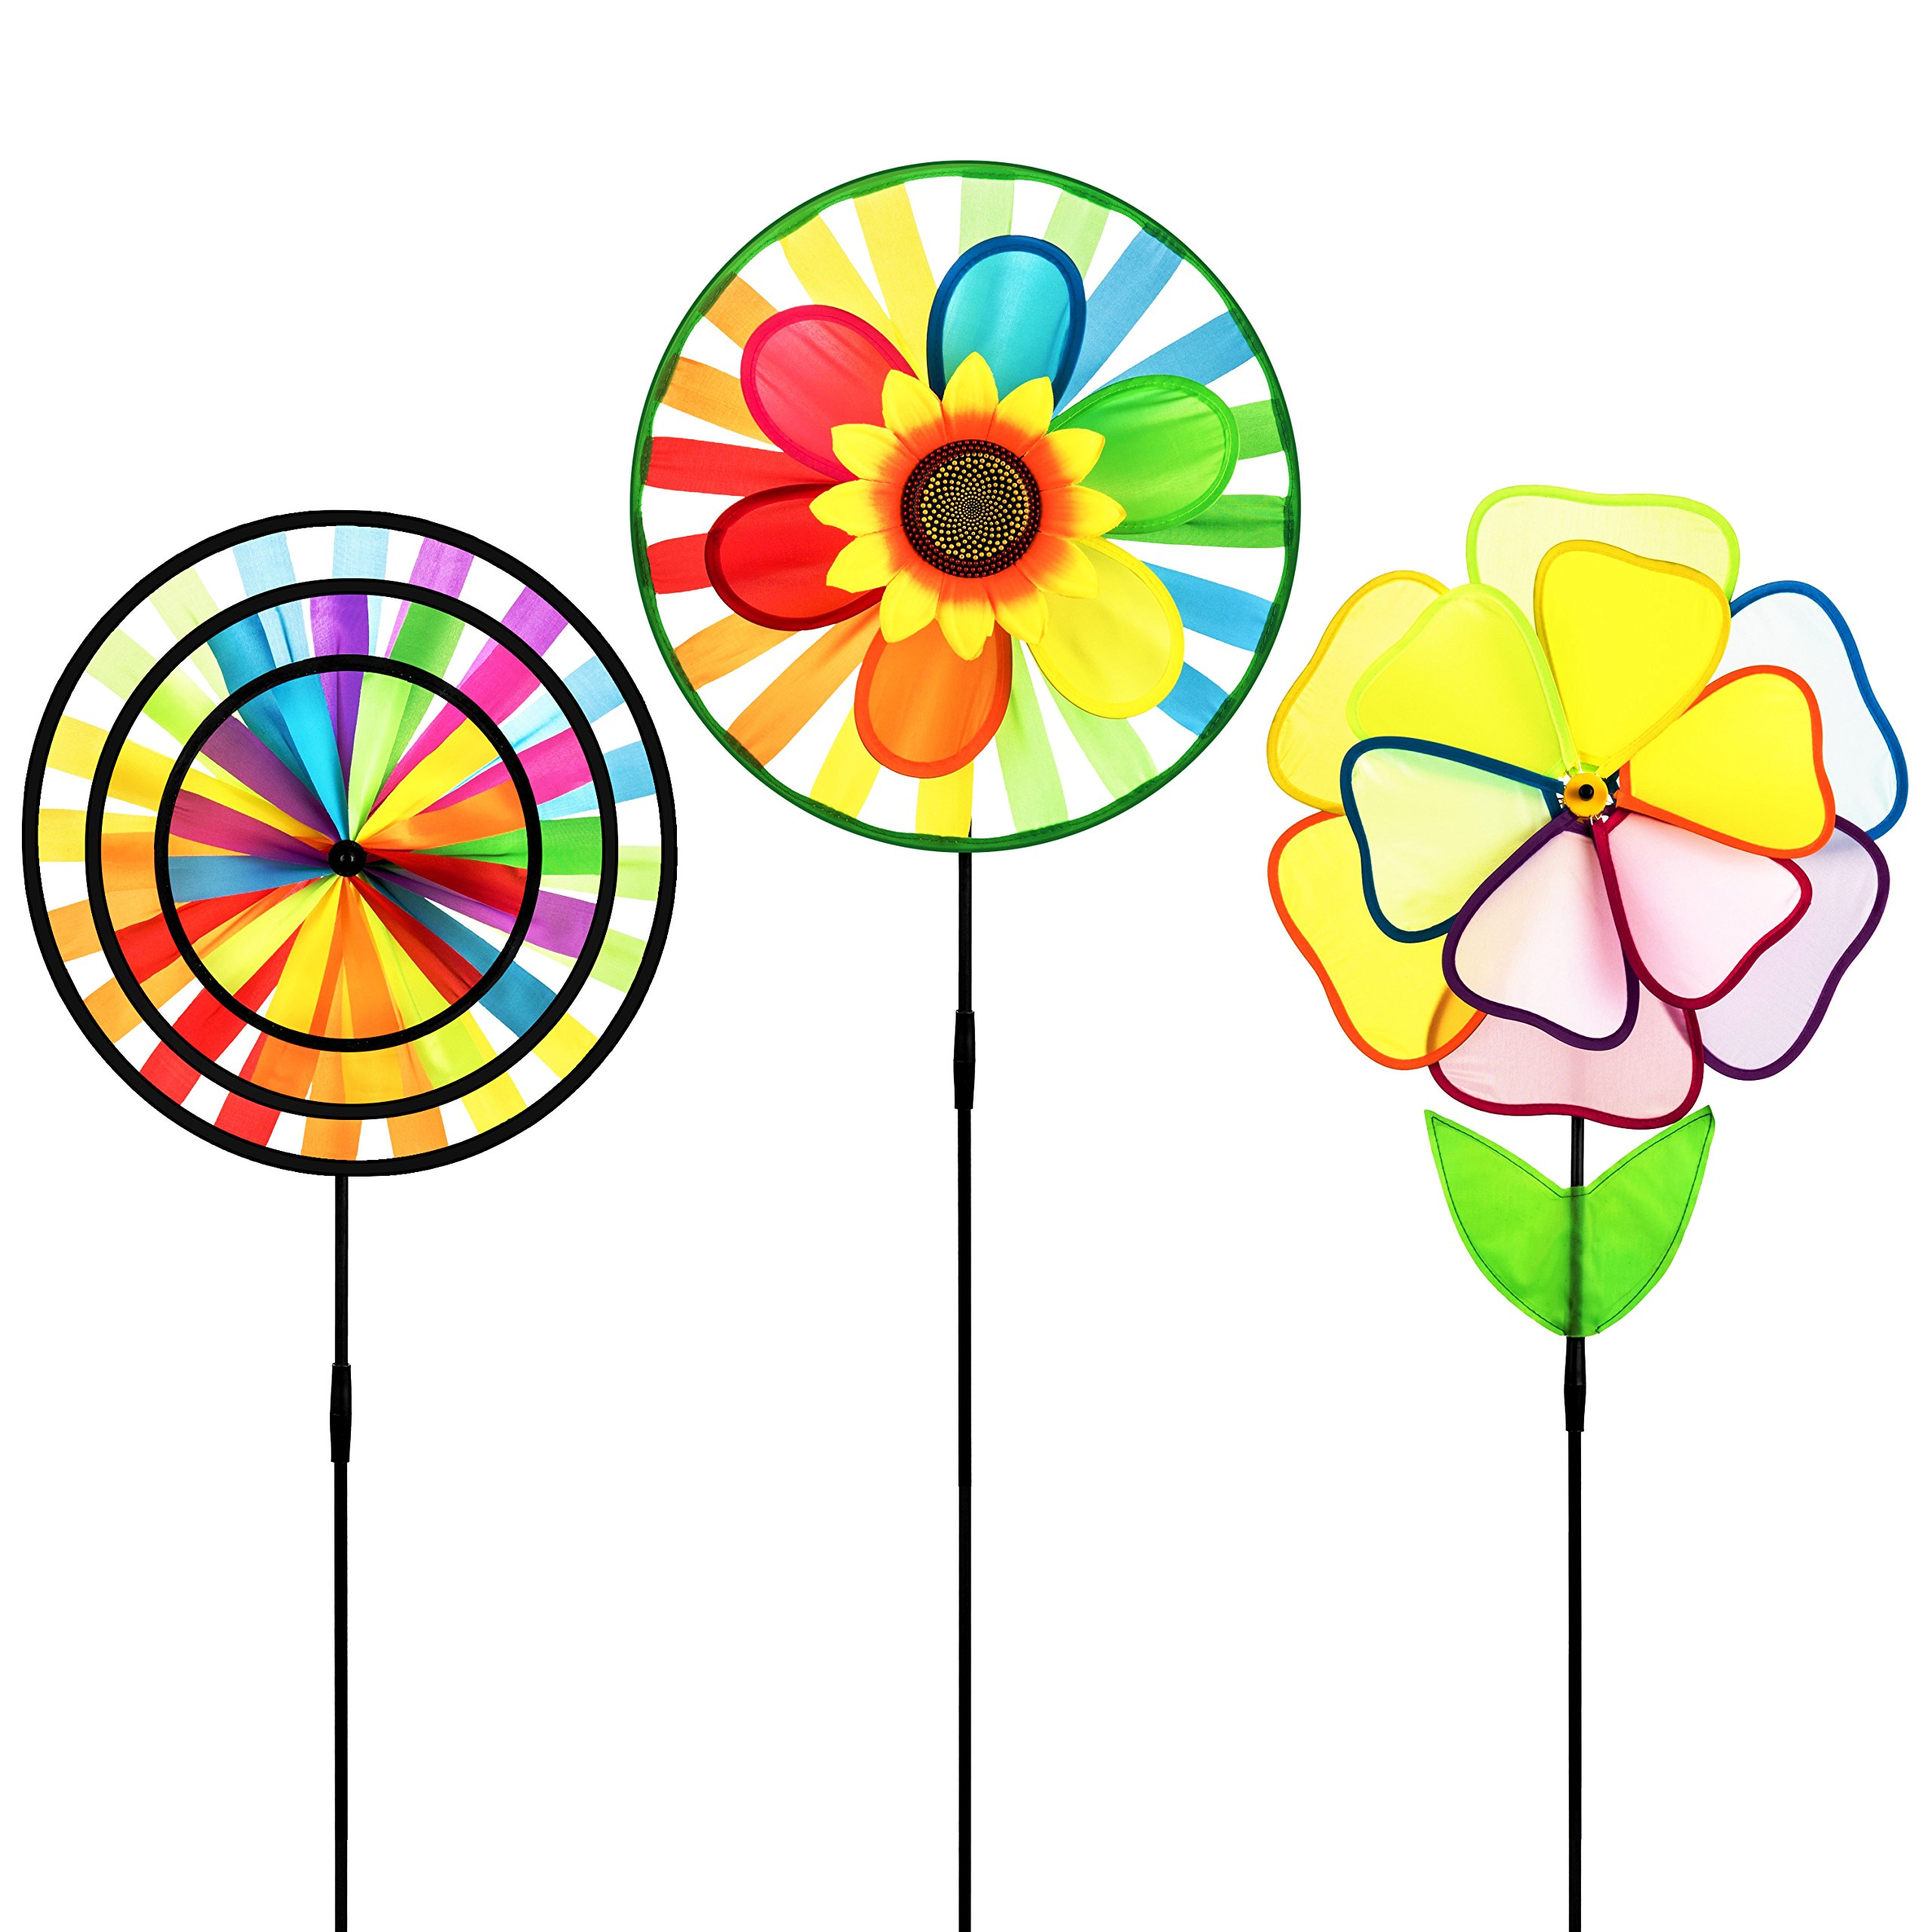 Dreamline Product Pinwheel 3 Pack Made of Durable 100% Weatherproof Nylon and Fiberglass   Rainbow Colored spinner for Gardens dance in the slightest of breezes.